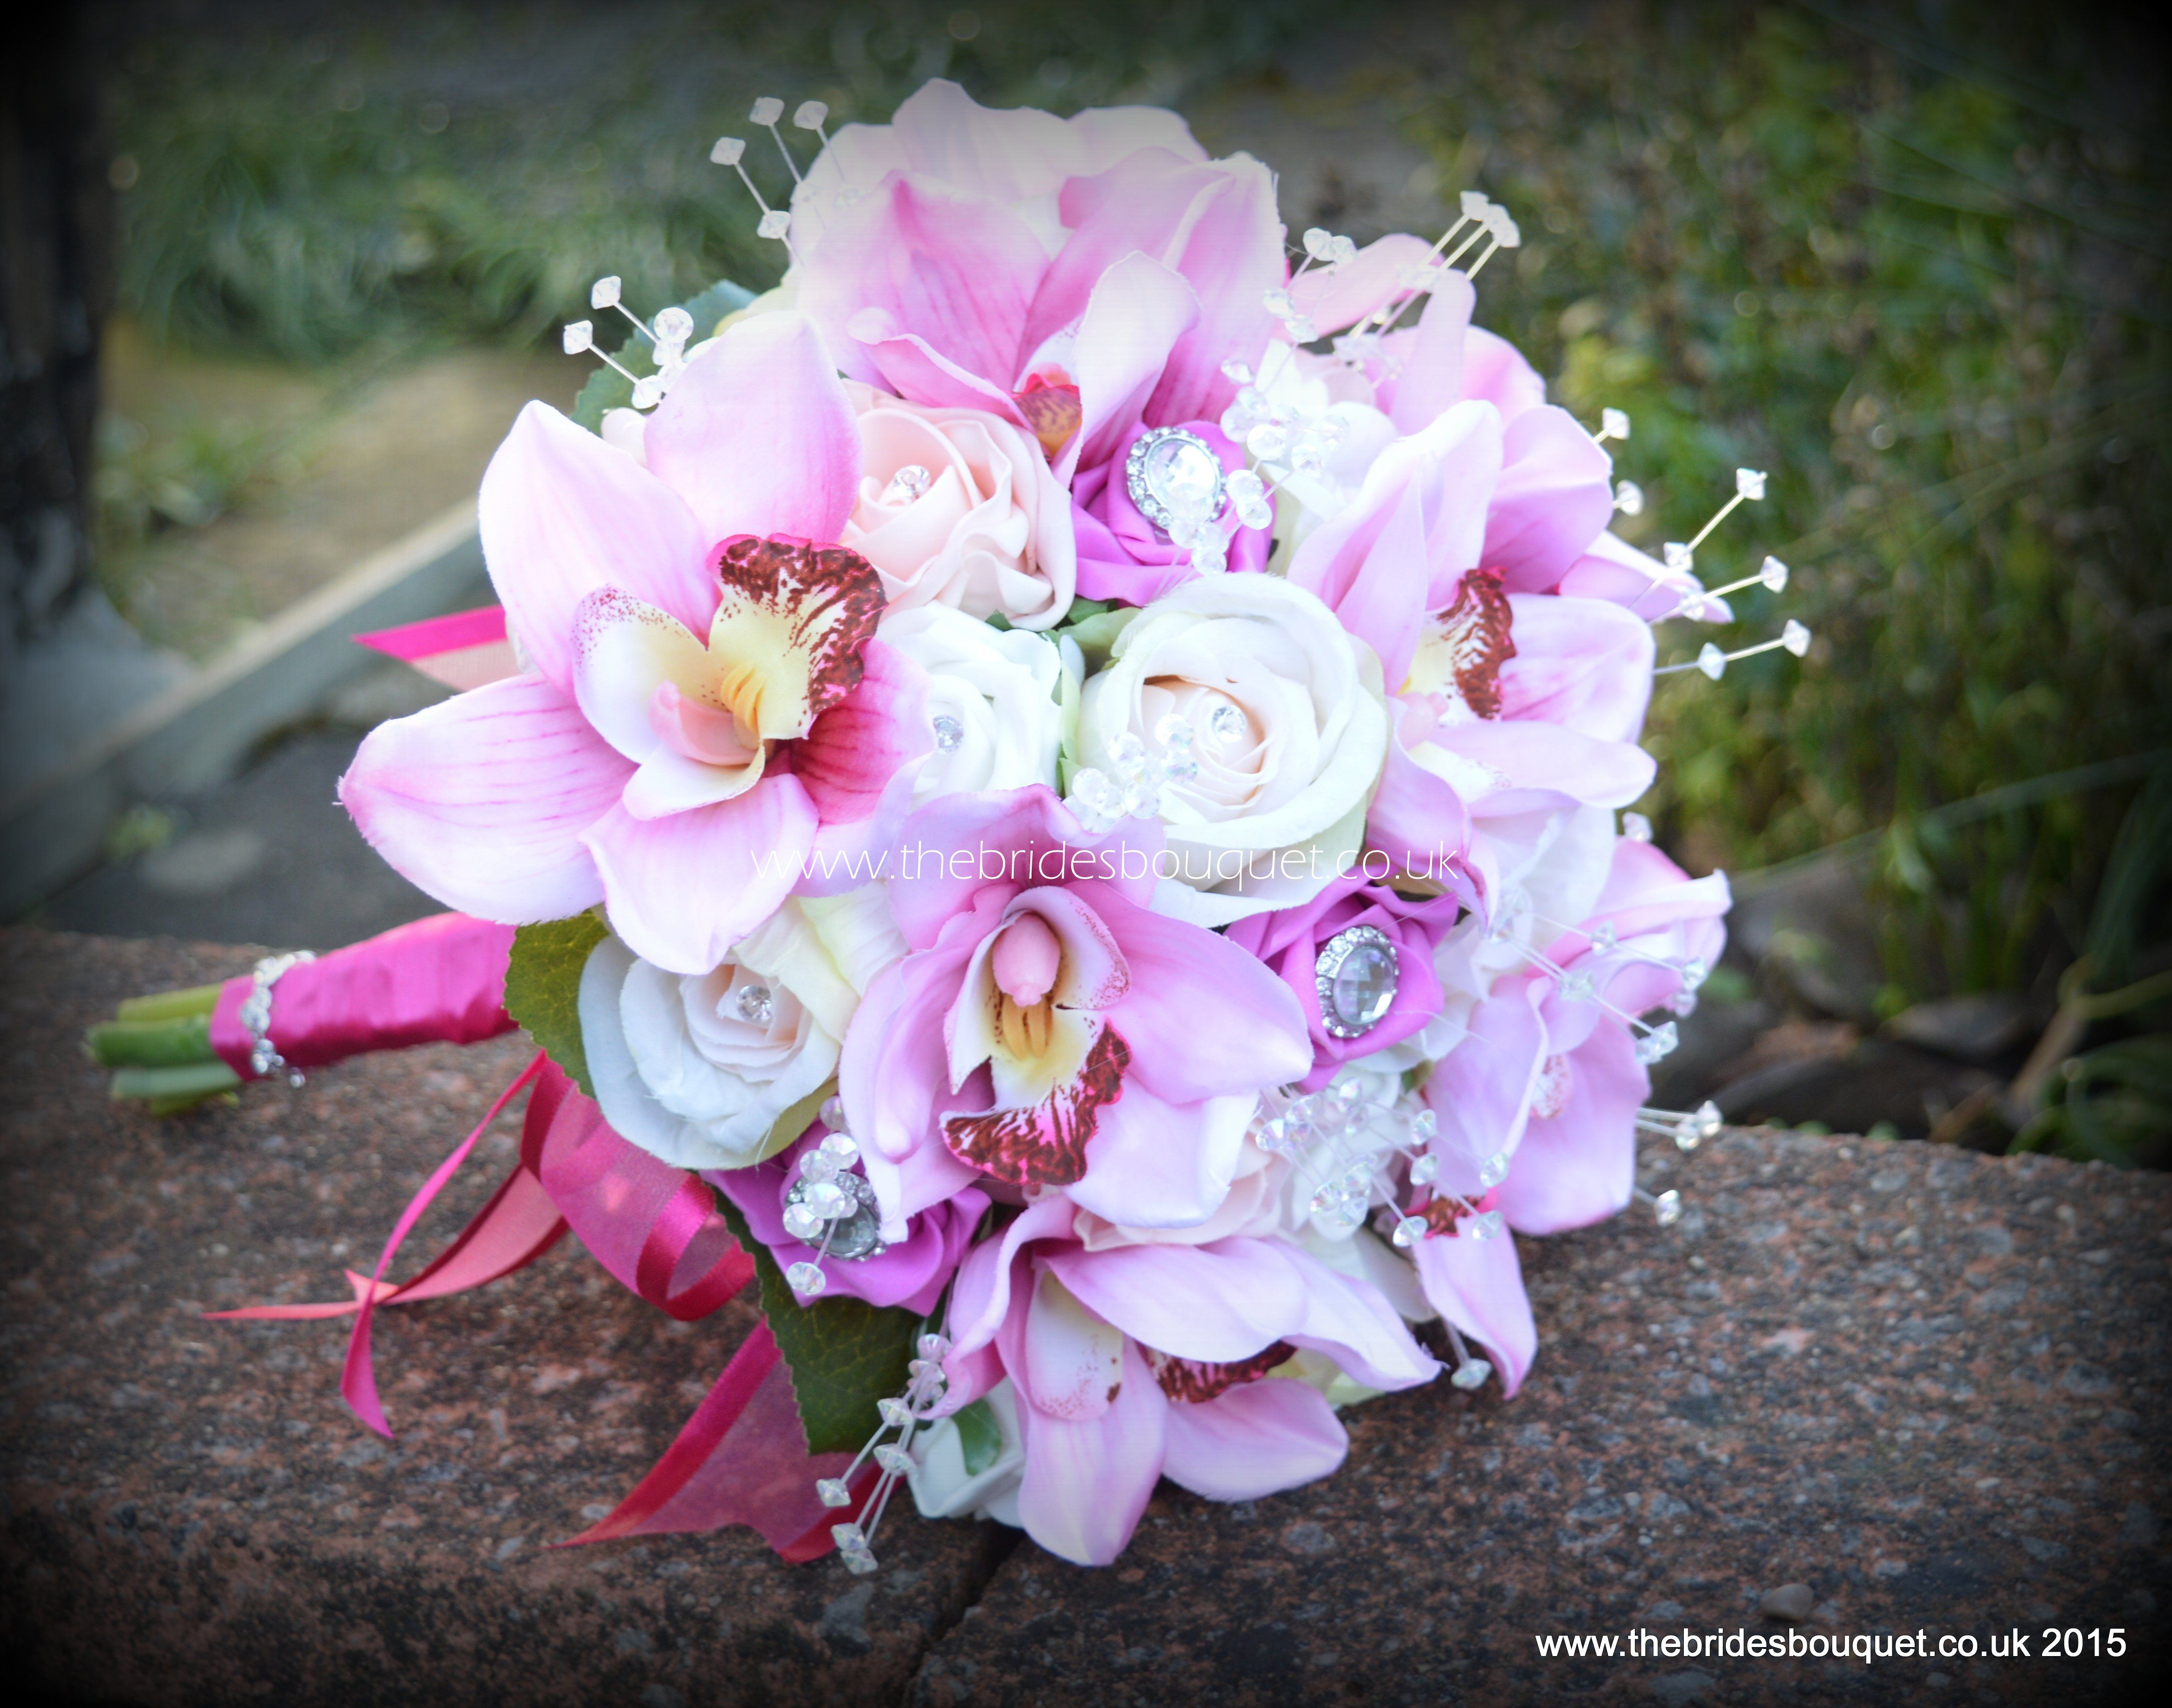 Orchid And Rose Pink Brides Bouquet Silk Wedding Flowers By Www